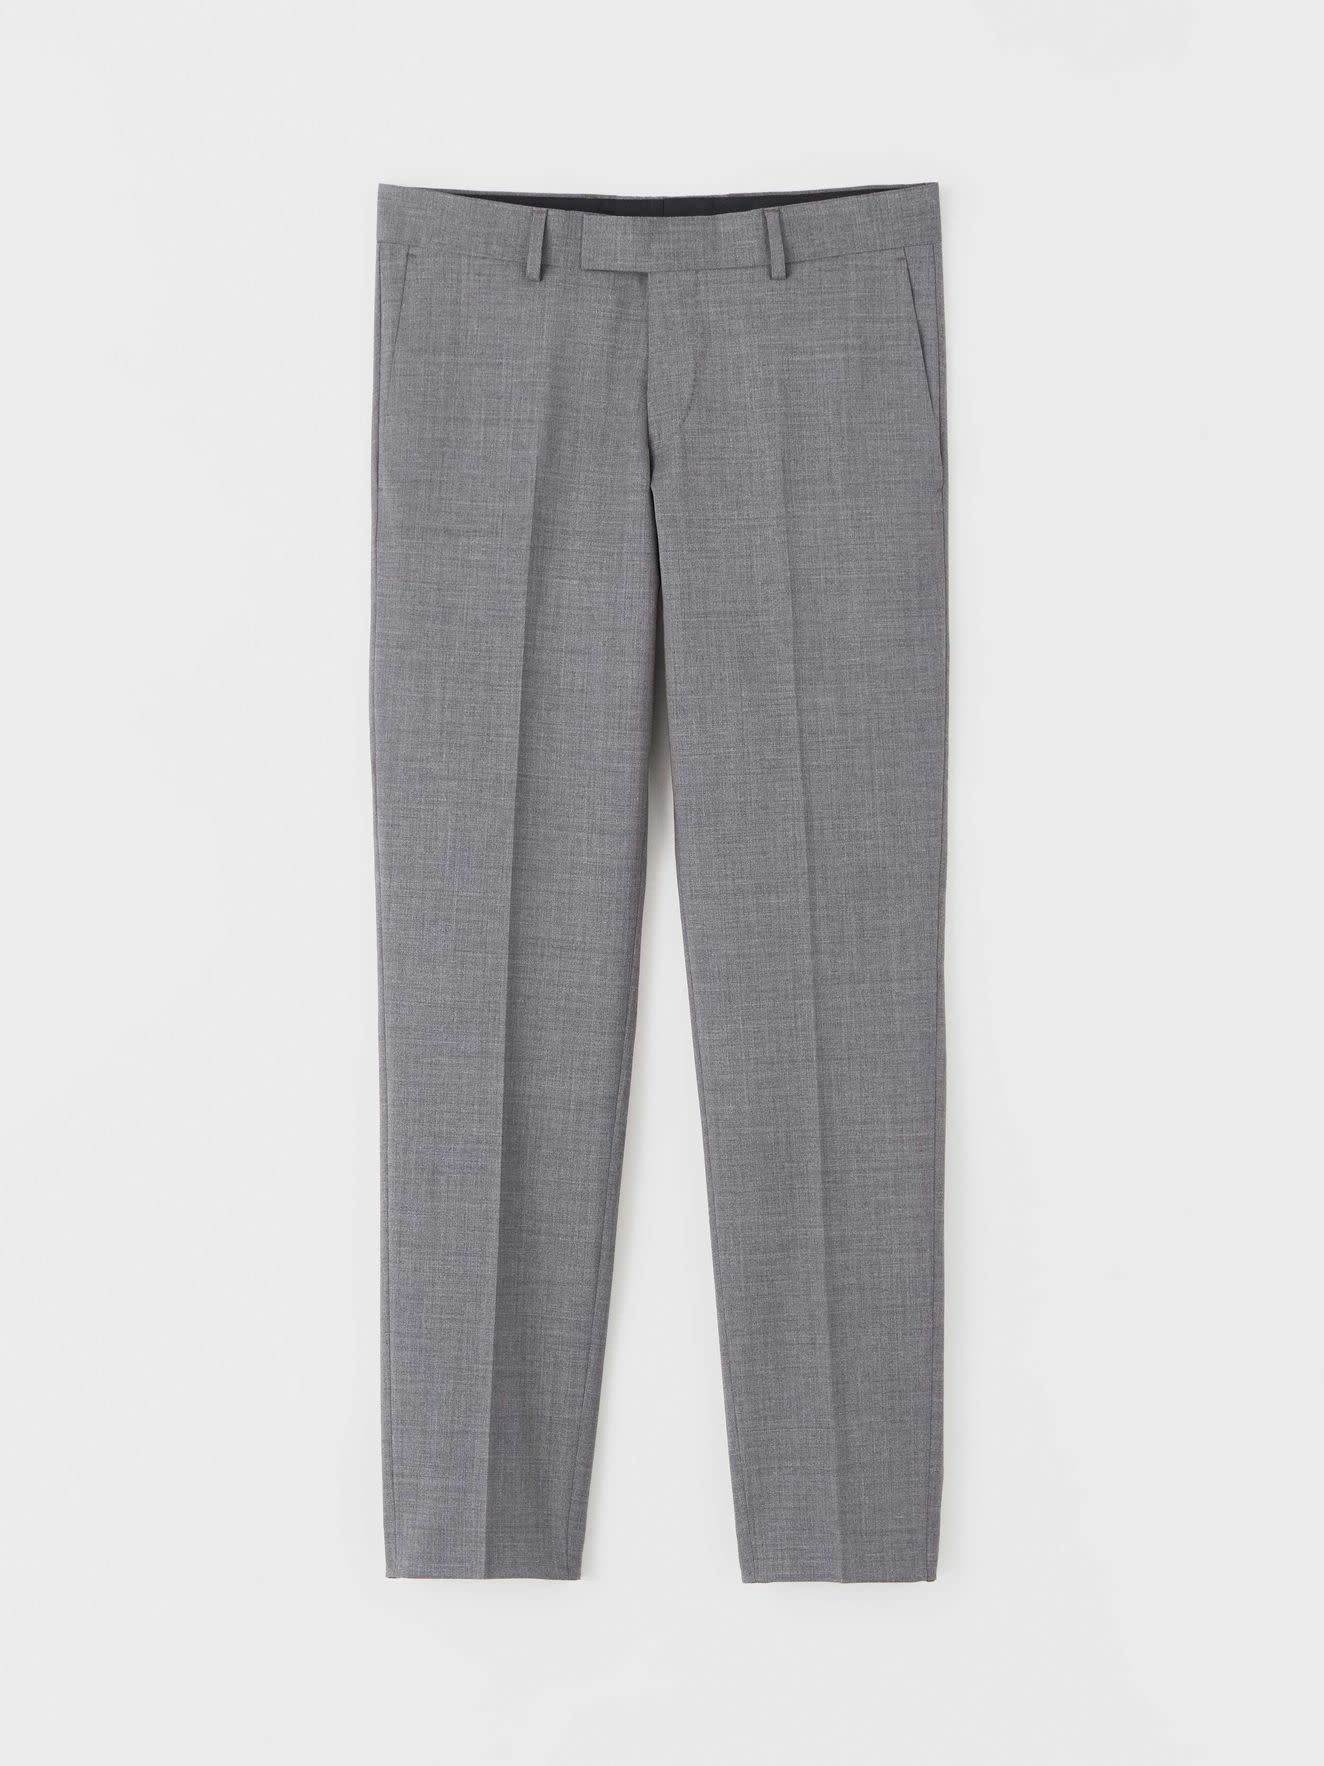 Tordon Suit Pants Light Grey-6